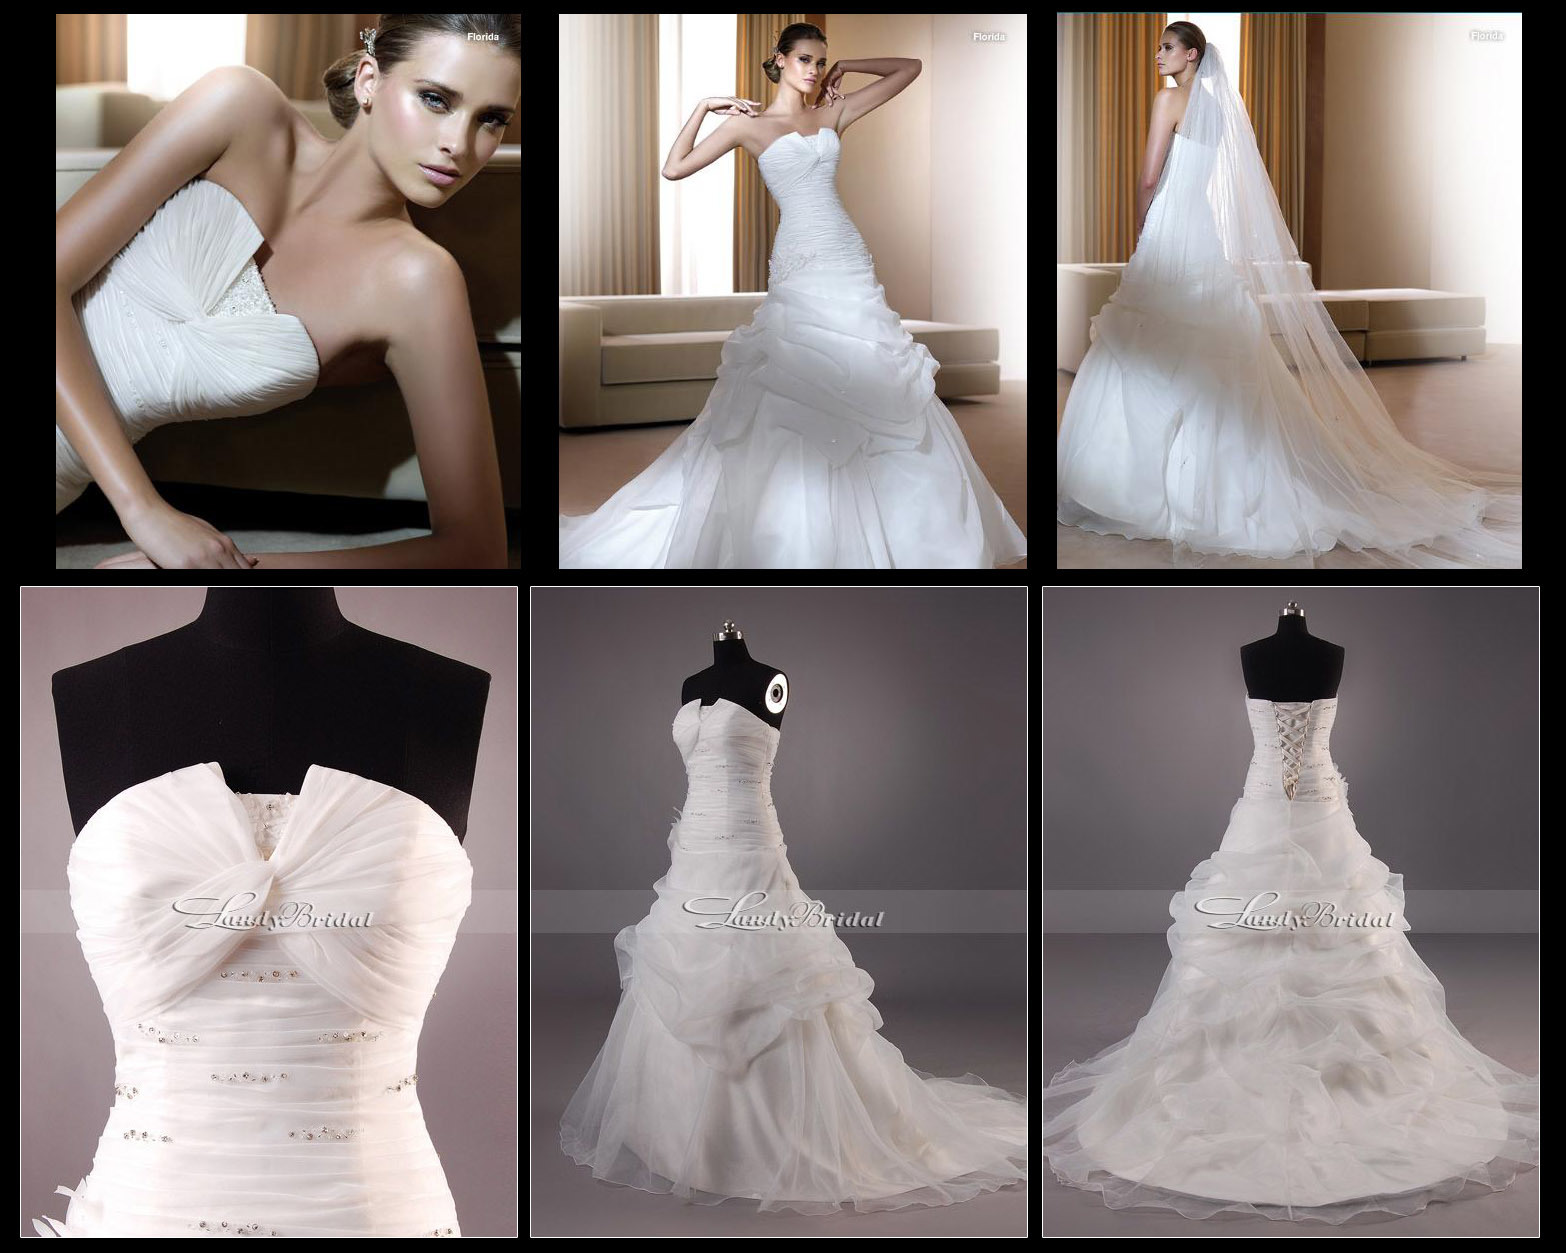 the dress wedding dresses in color Peacock Dress Coloring by Taylor Ann Art Click the image for more details on getting